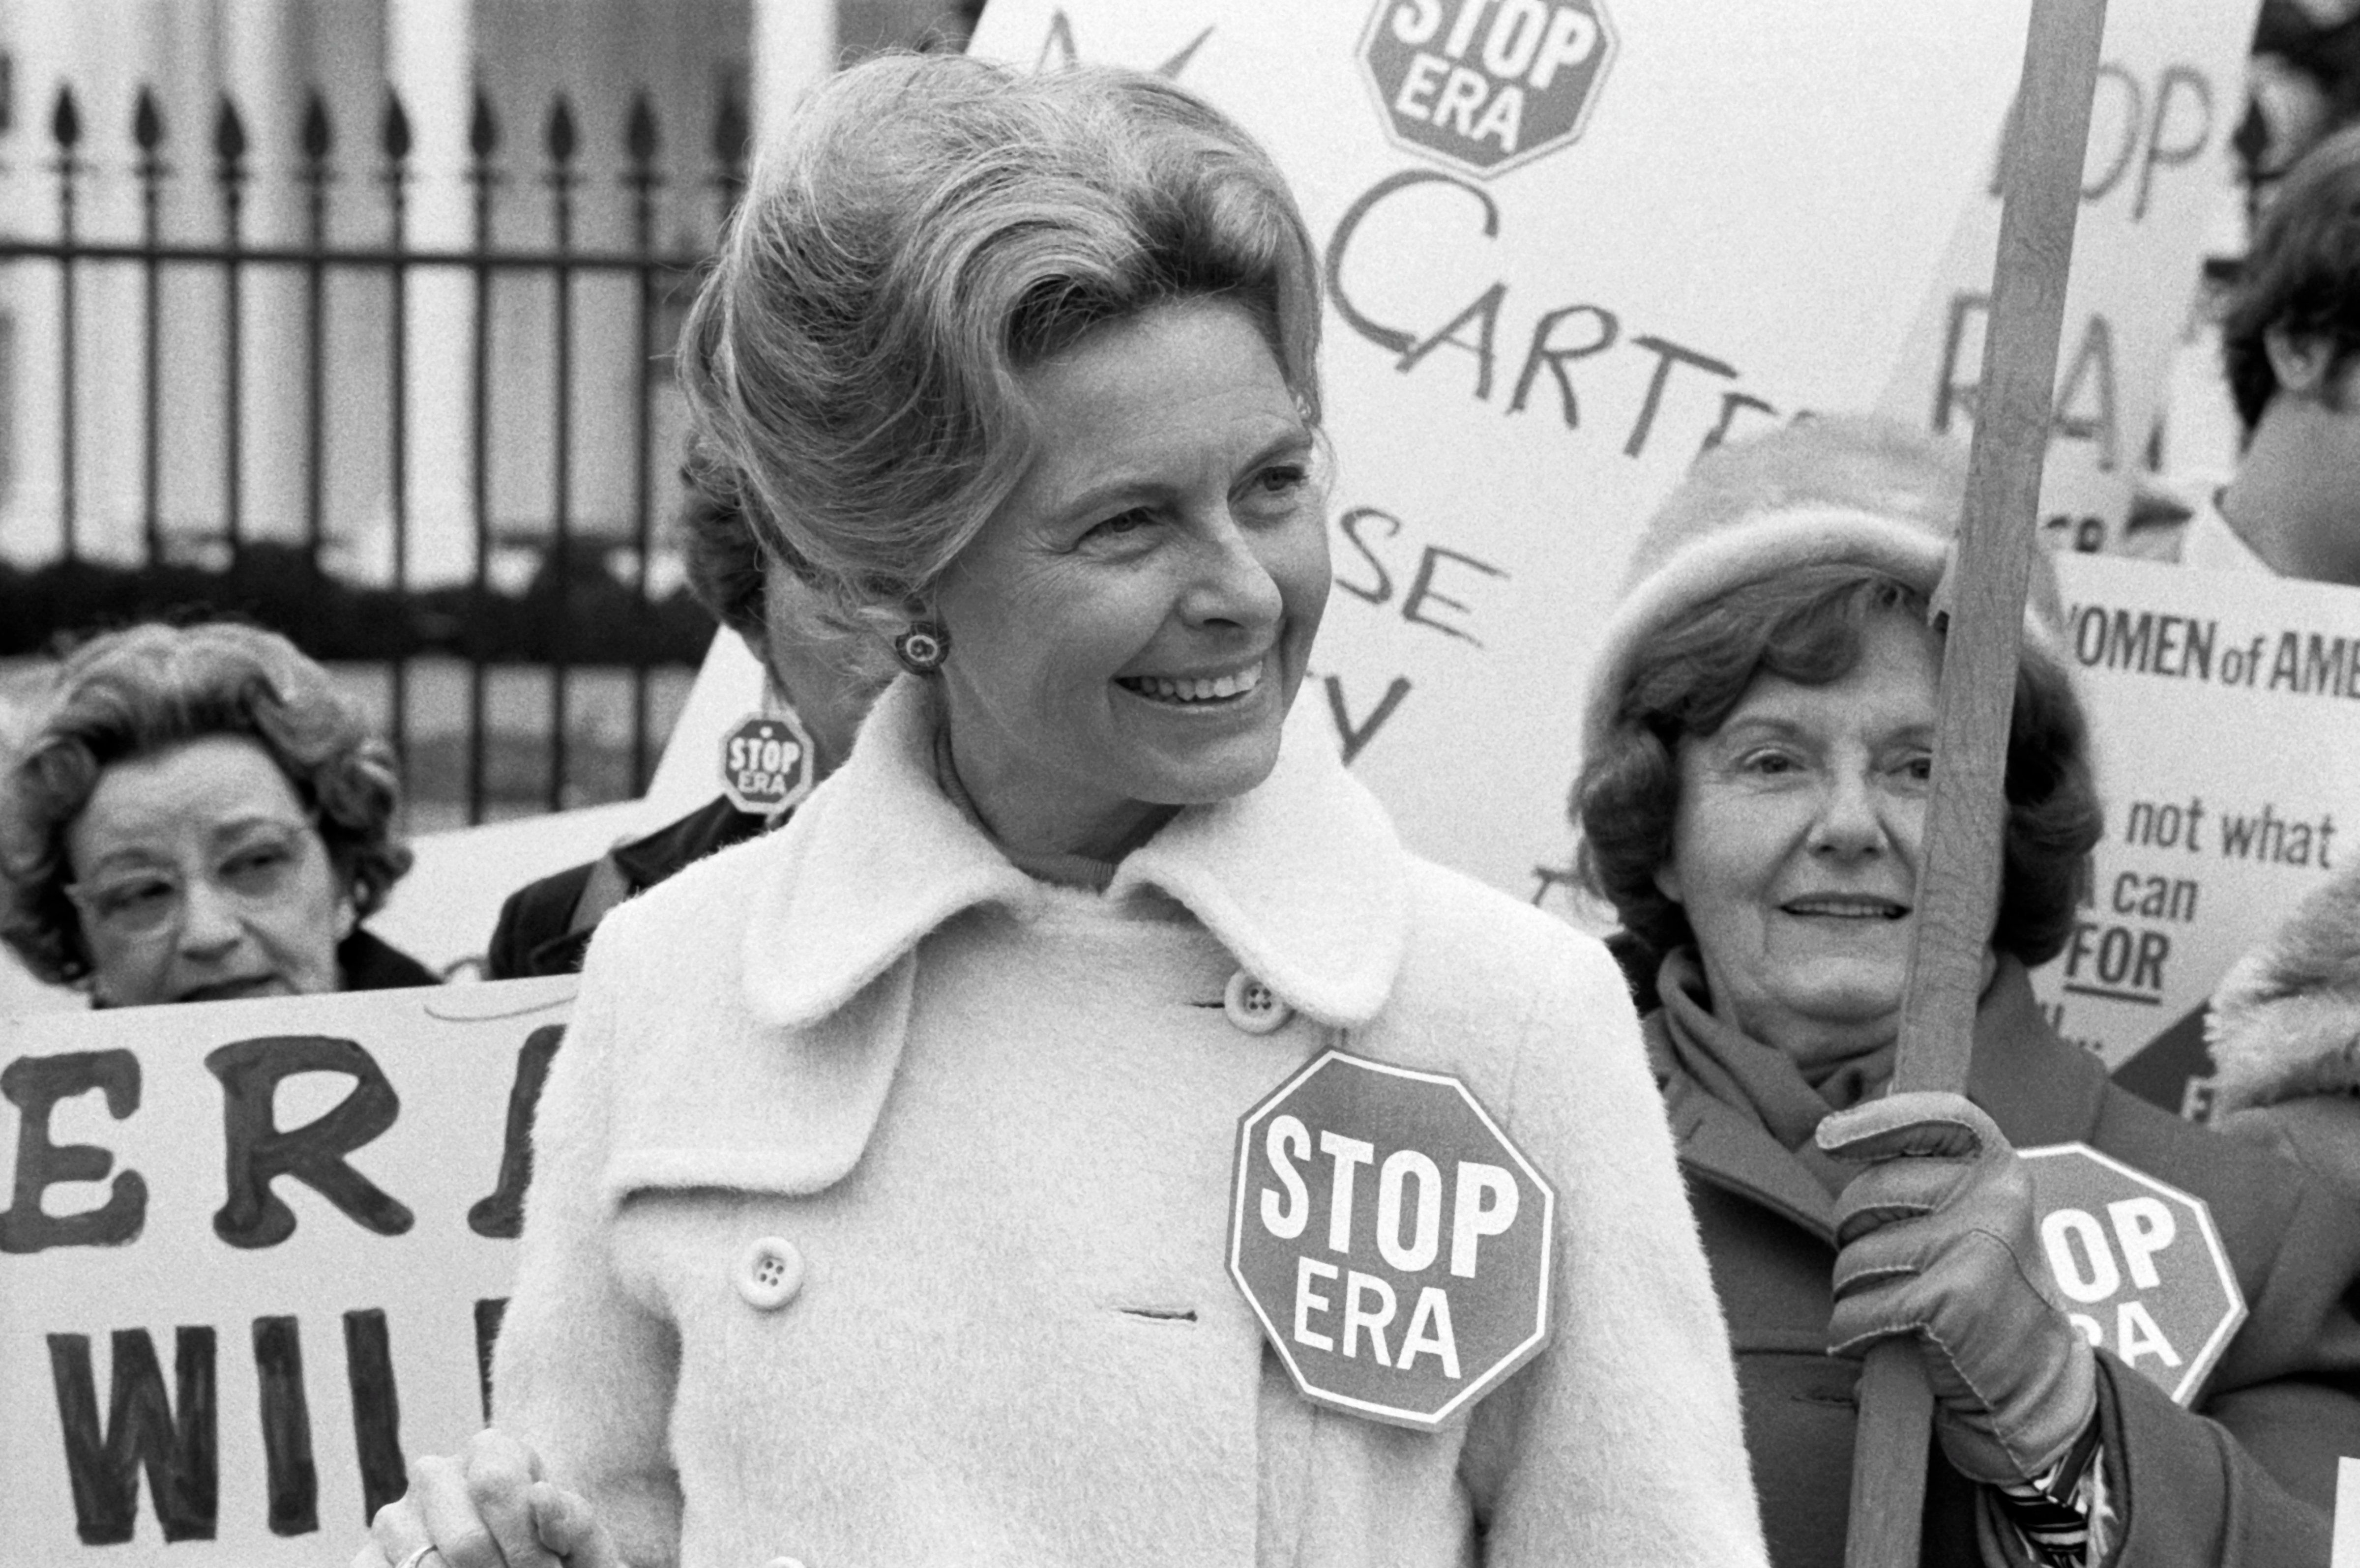 Activist Phyllis Schafly wearing a 'Stop ERA' badge during a demonstration with other women against the Equal Rights Amendment in front of the White House, Washington DC, February 4, 1977. (Photo by Warren Leffler/lcok/Underwood Archives/Getty Images)